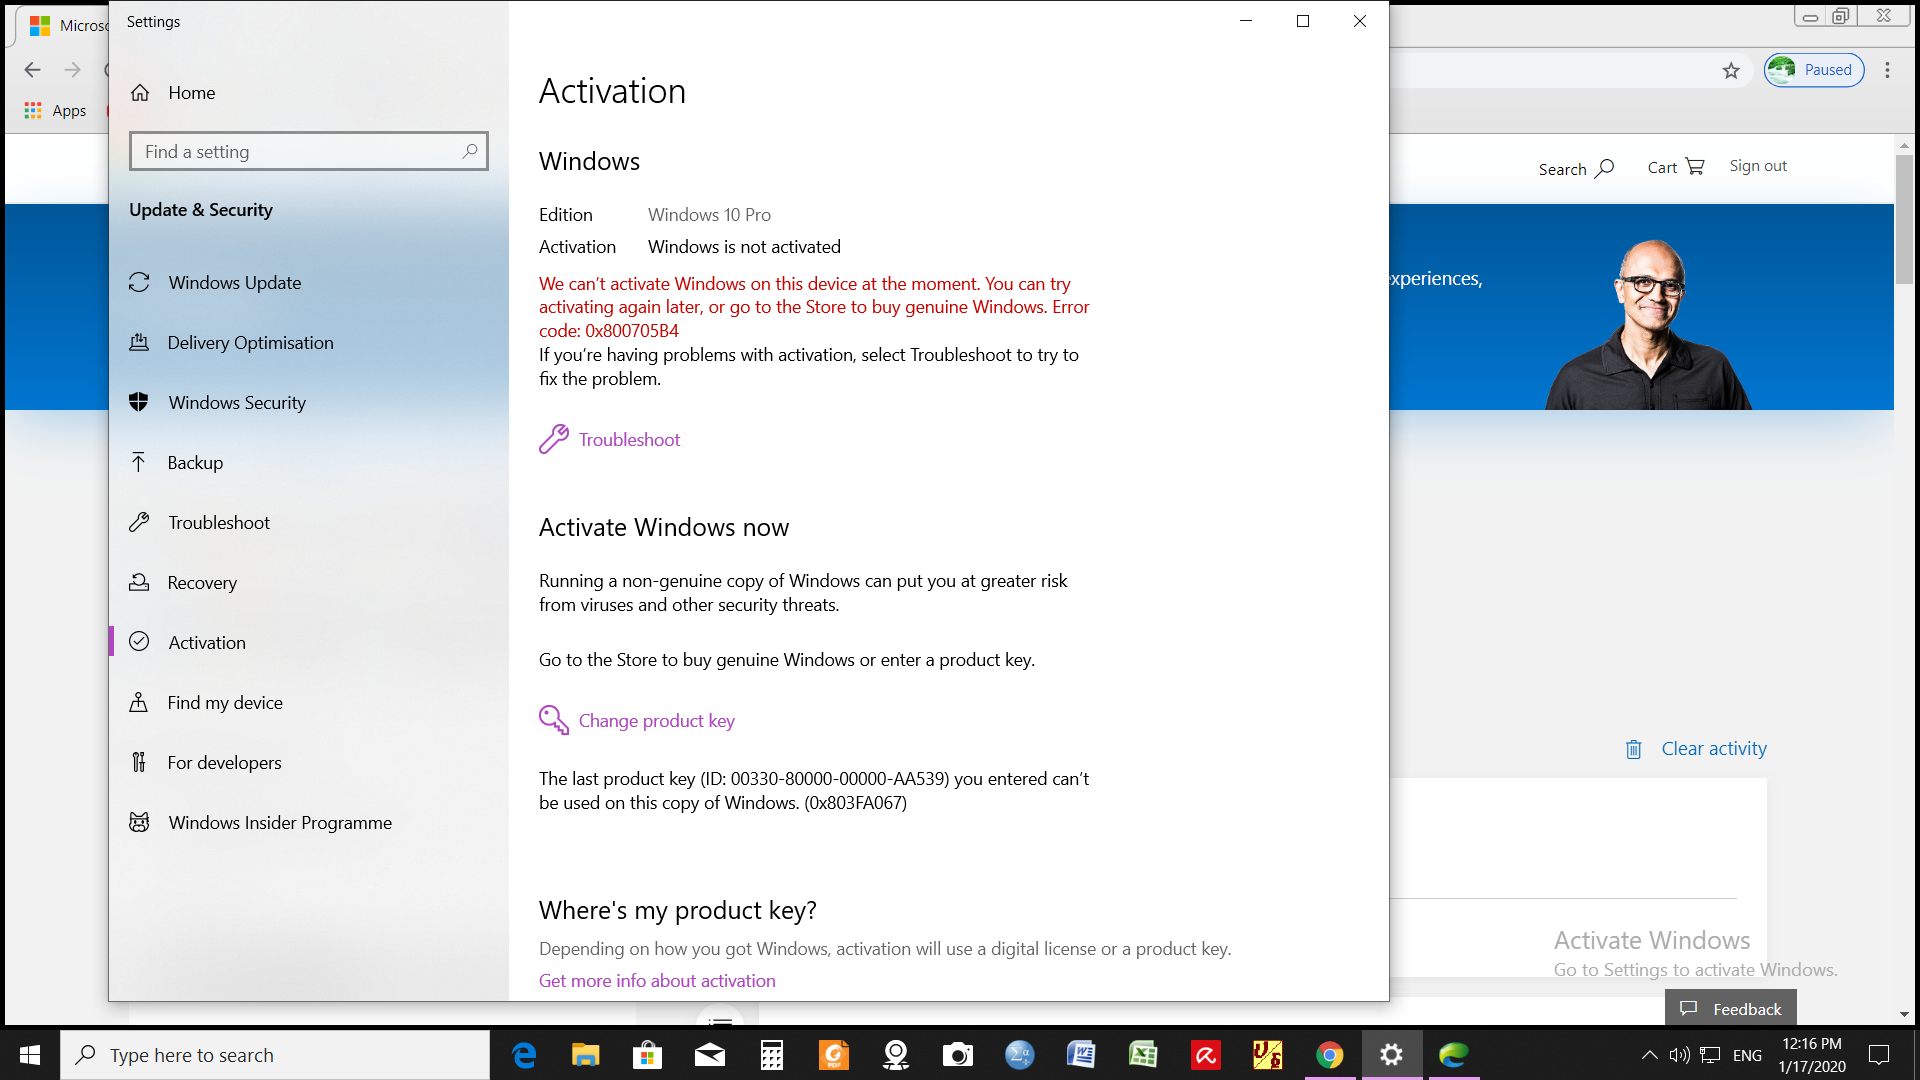 I can't activate my computer Windows 10 Pro e1887b99-52ca-4f4c-ac2c-6186a40ee4ab?upload=true.png